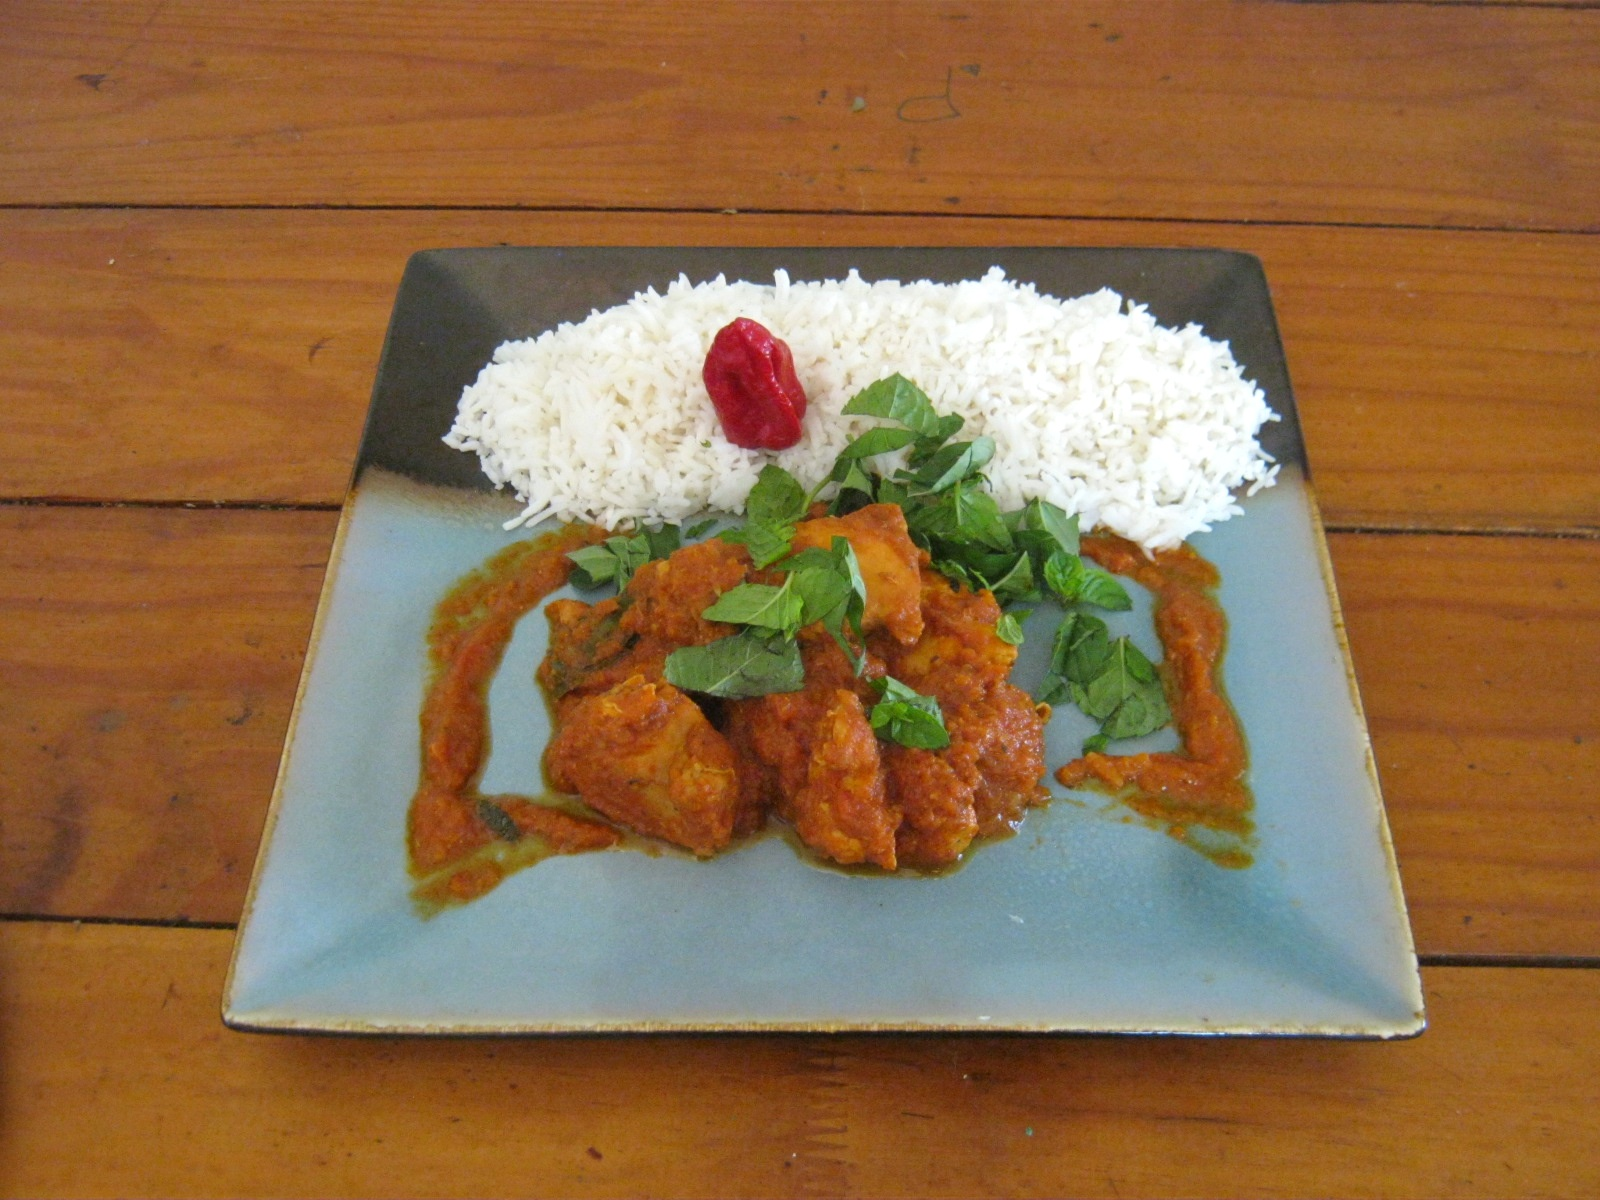 A tasty Madras chicken curry from India